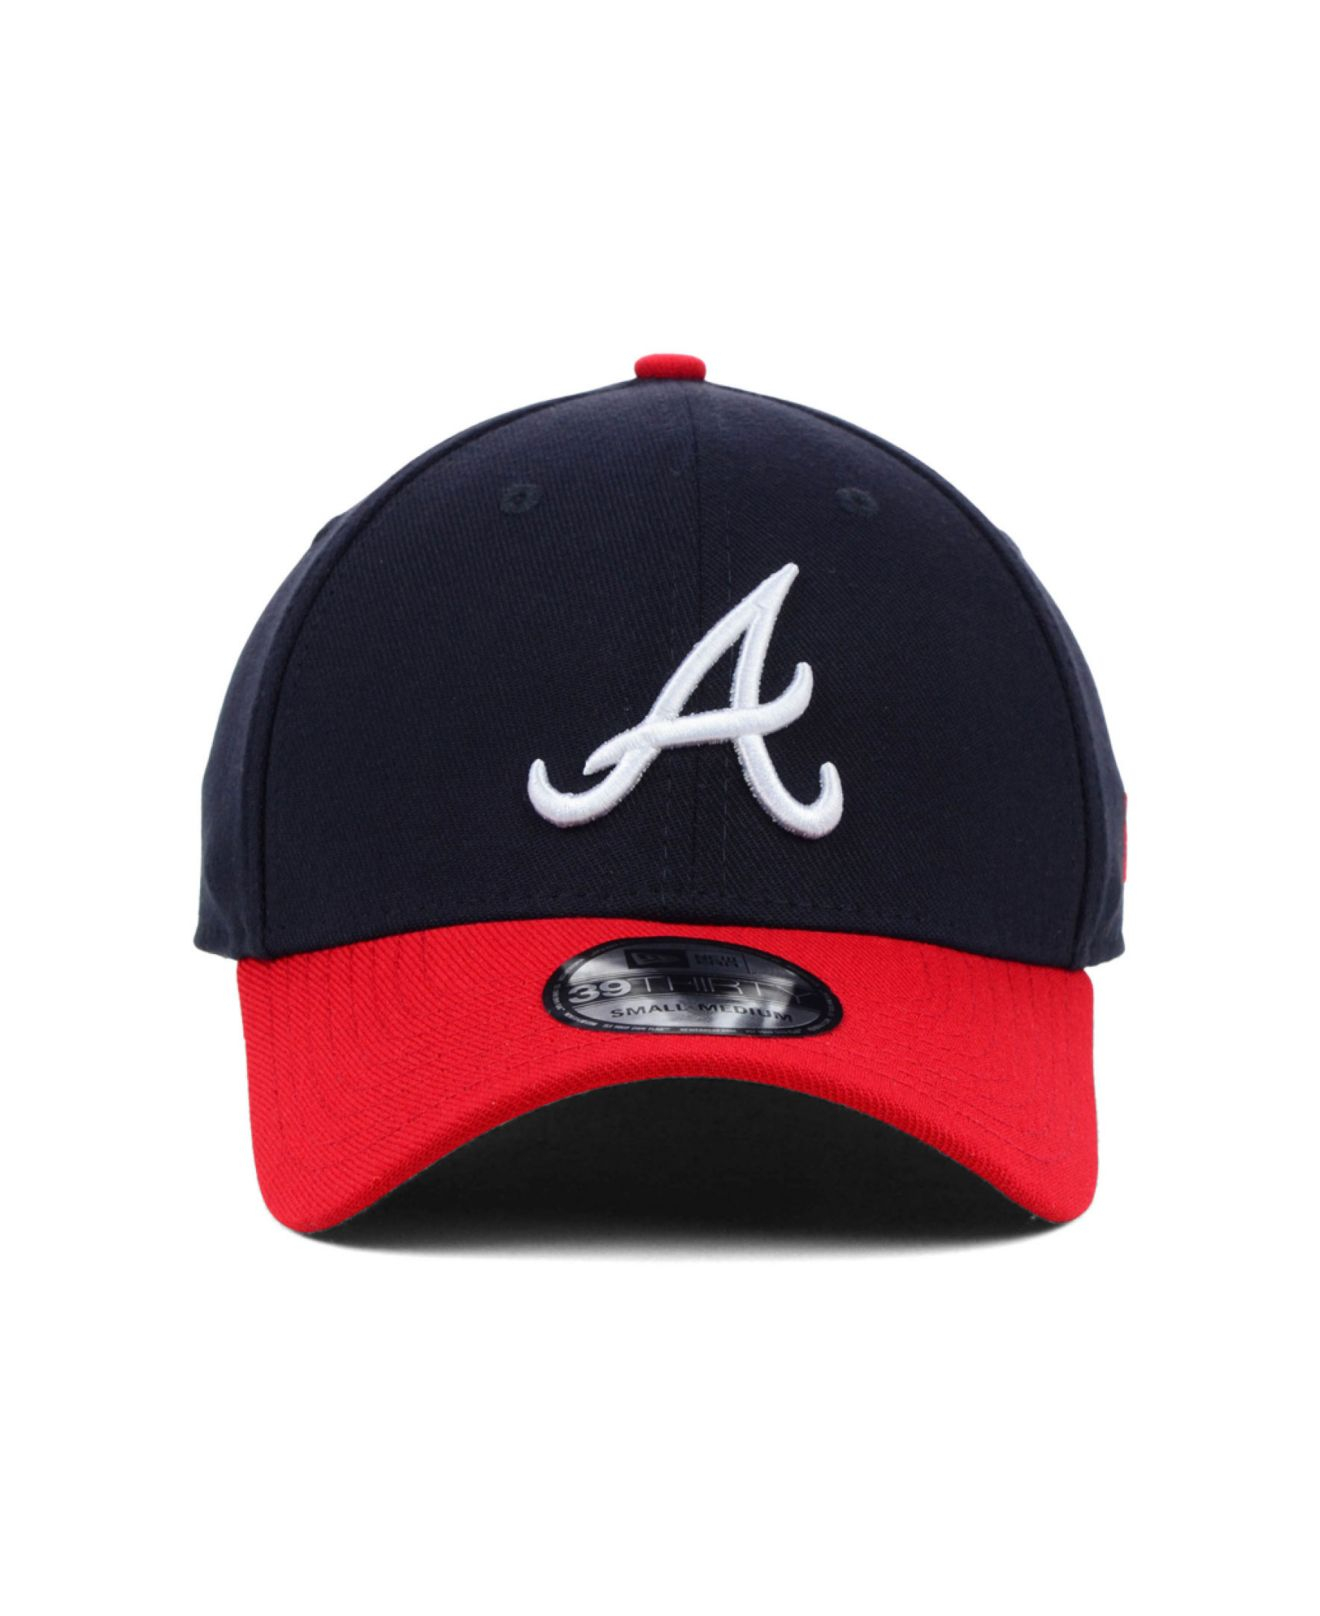 new arrival f968f 029fd ... authentic lyst ktz atlanta braves mlb team classic 39thirty cap in blue  for men 78e6e 3e988